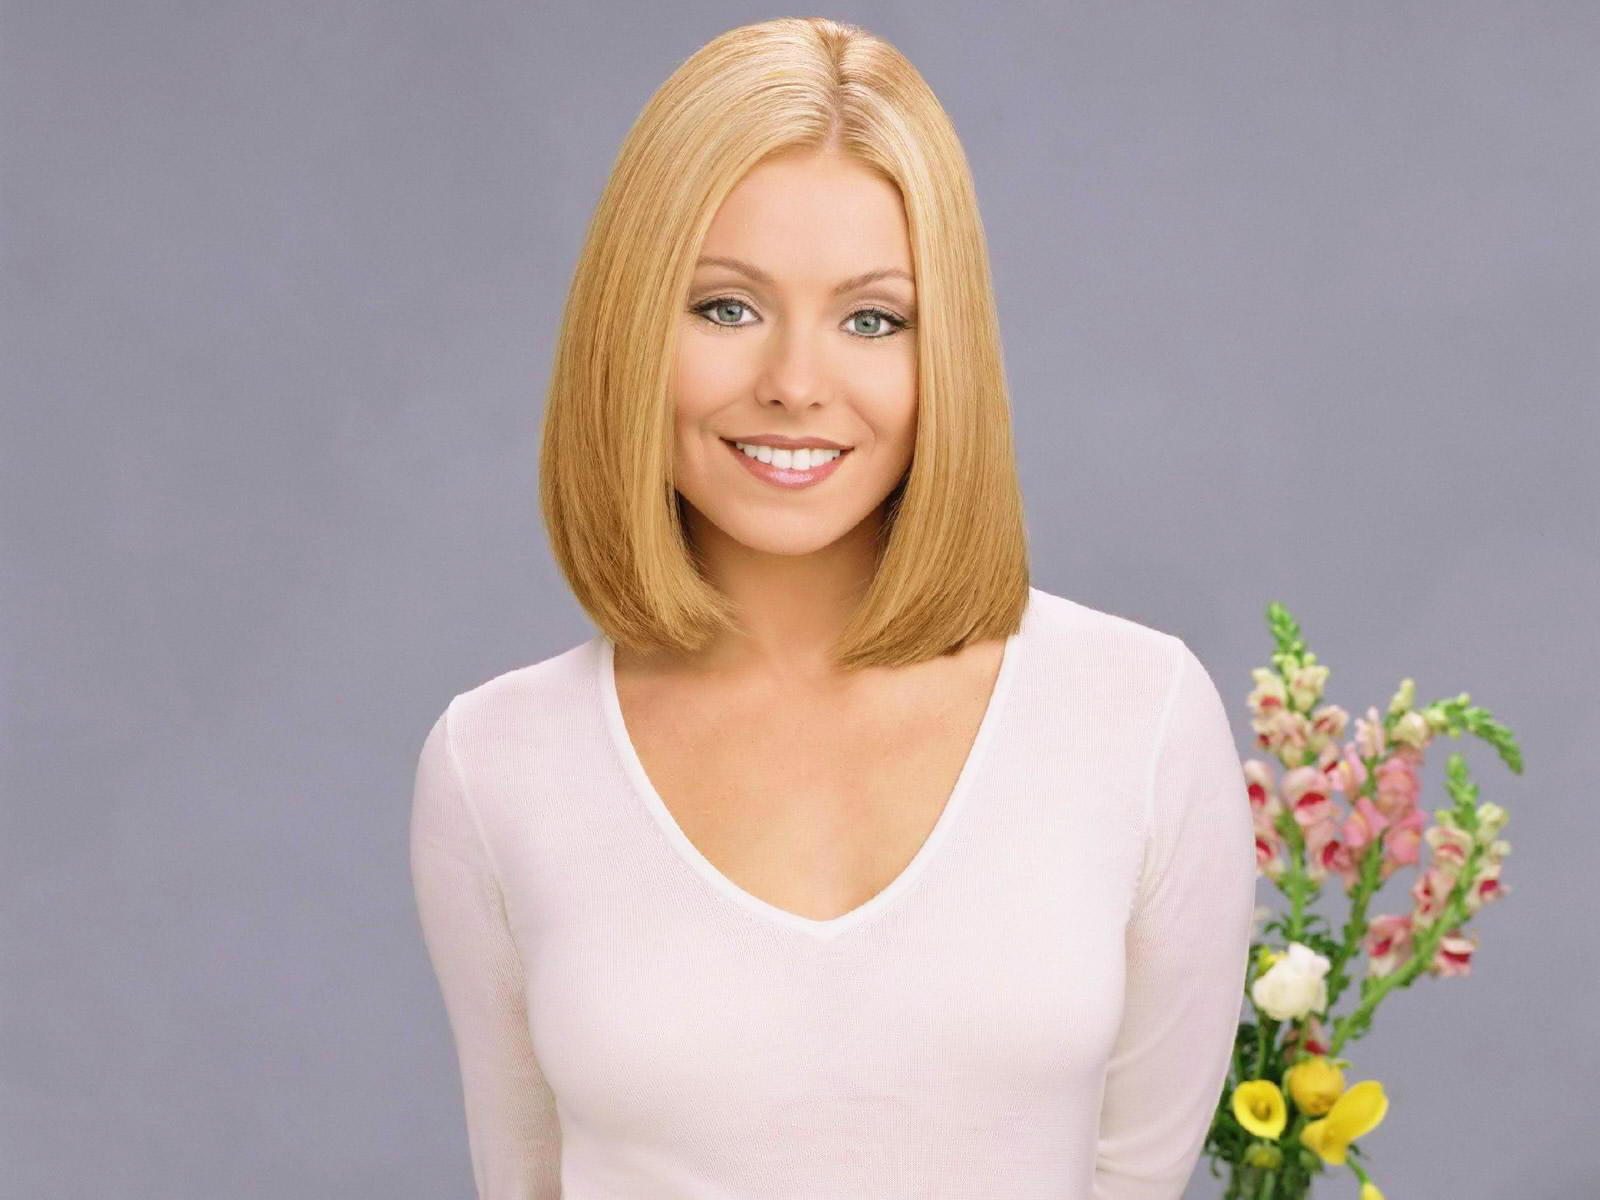 kelly-ripa-wallpaper-2